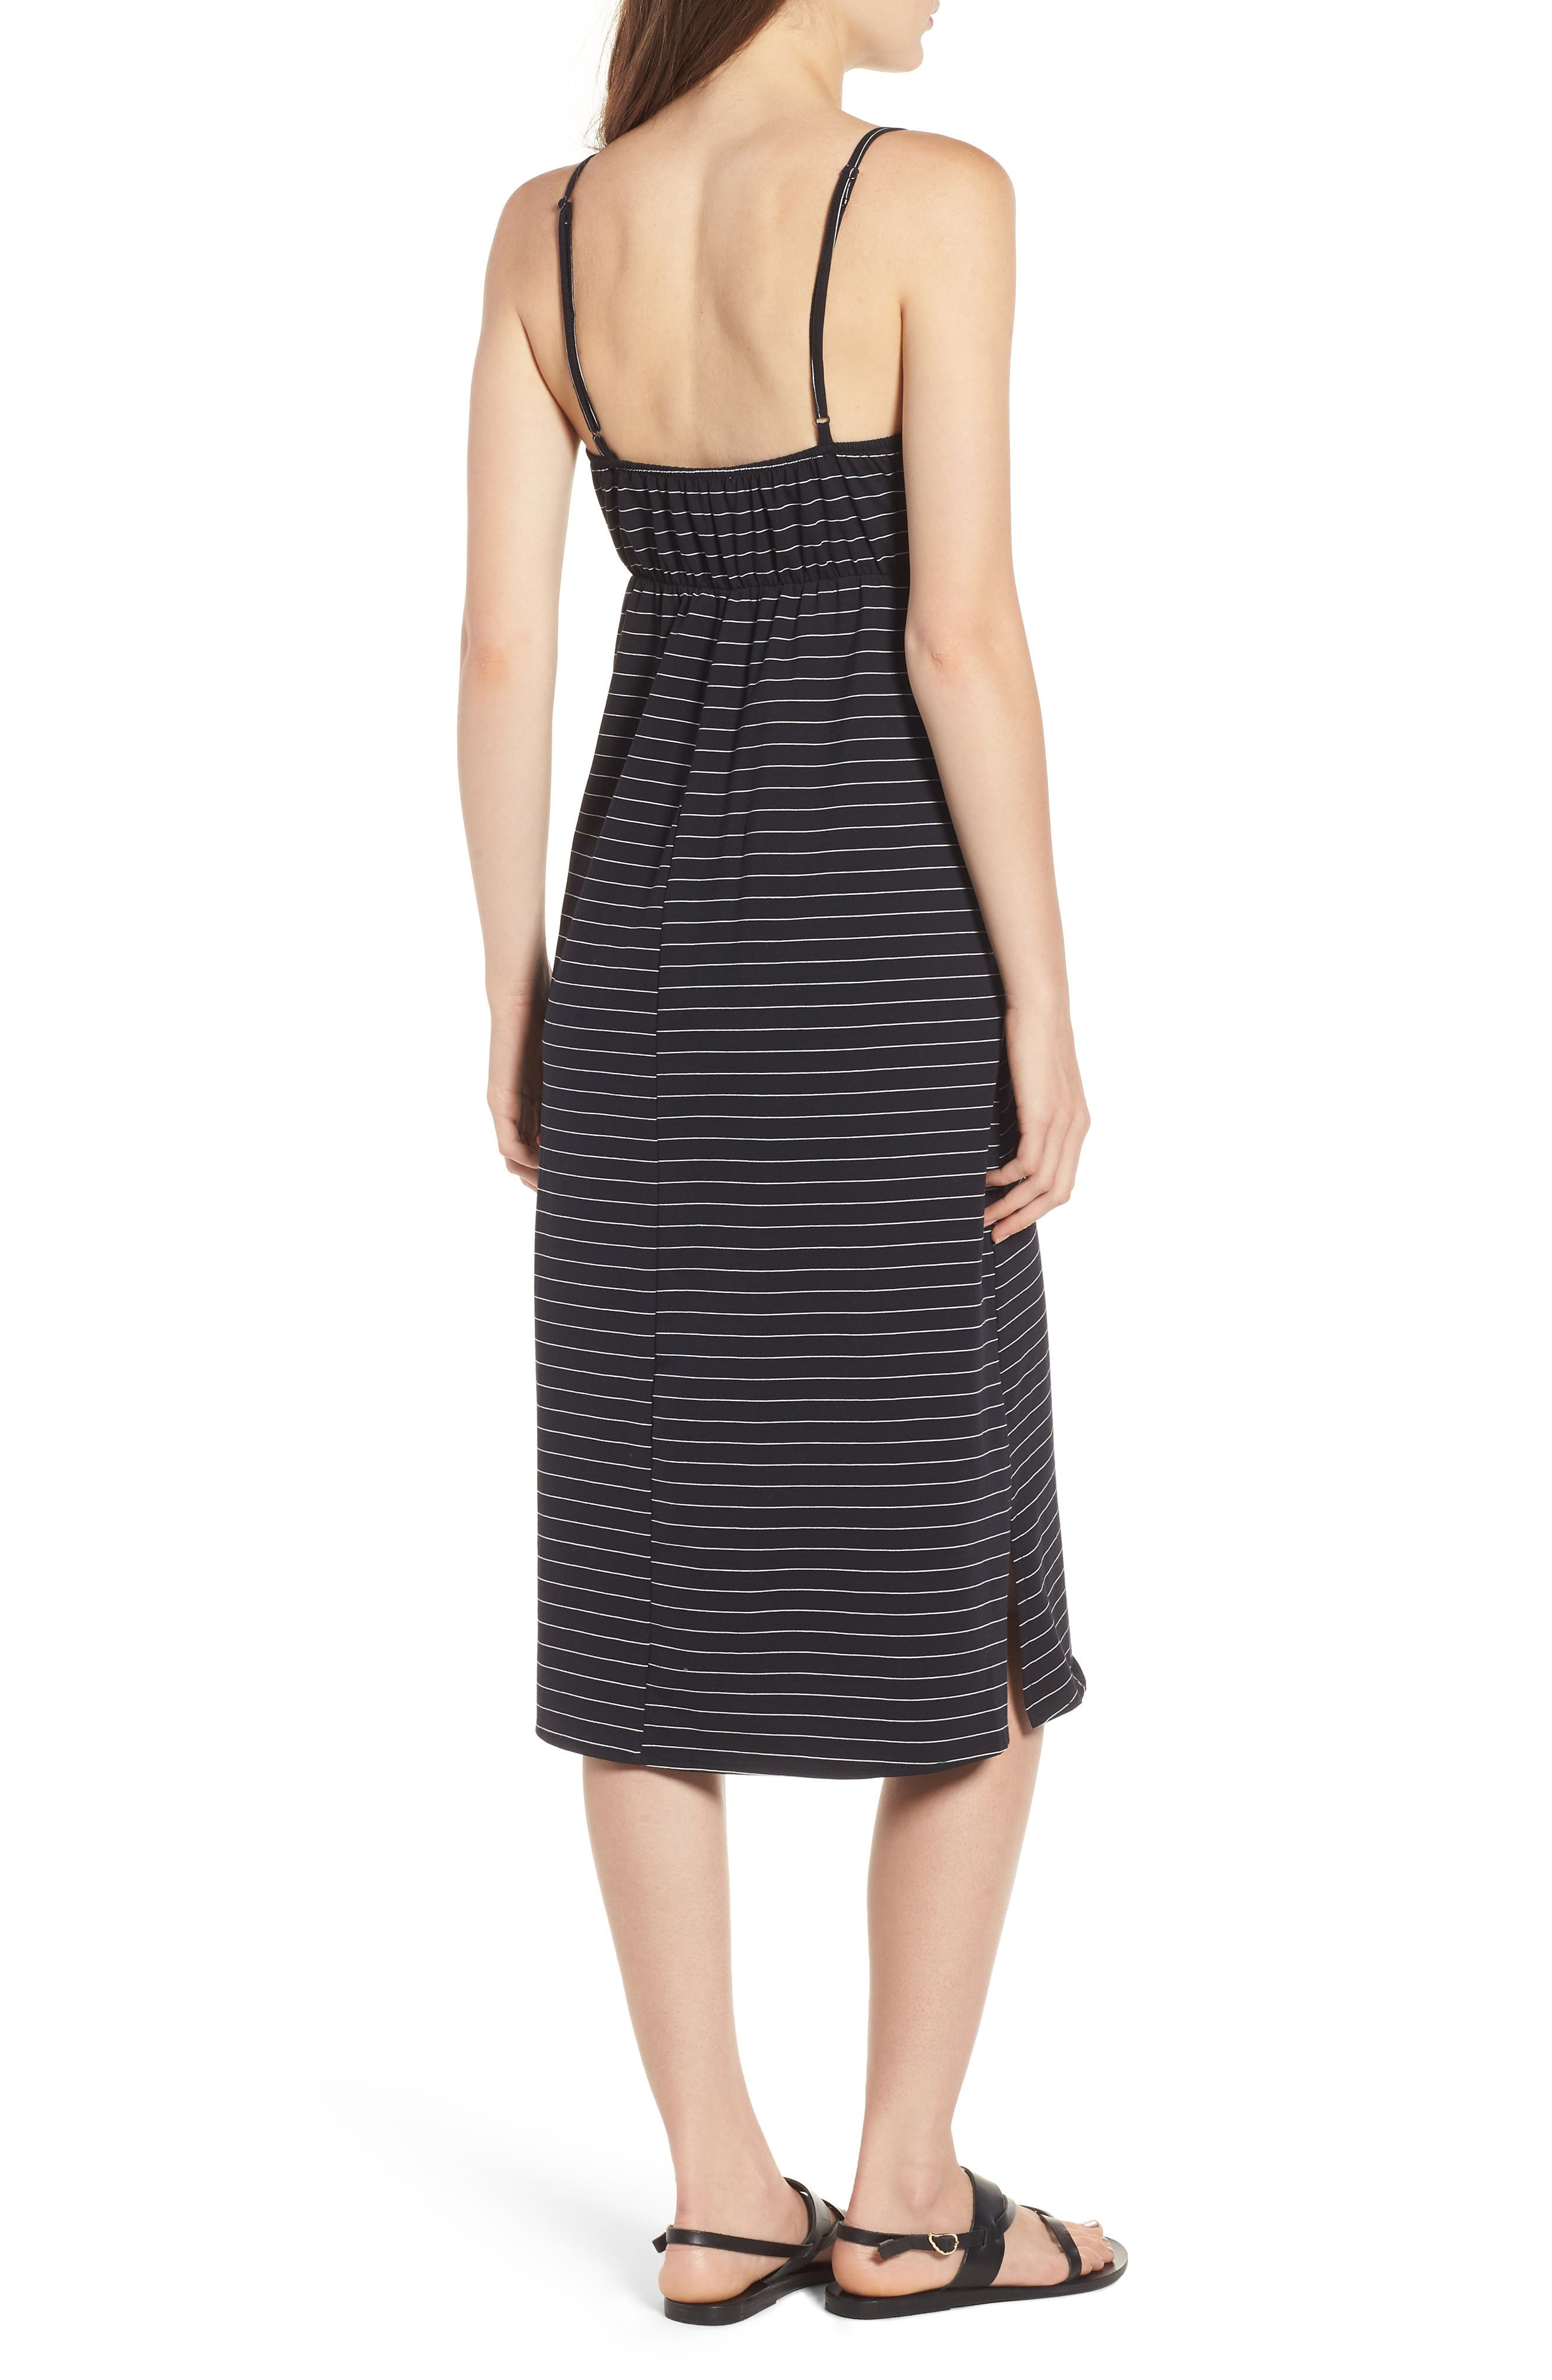 Suzanne Knot Front Dress,                             Alternate thumbnail 4, color,